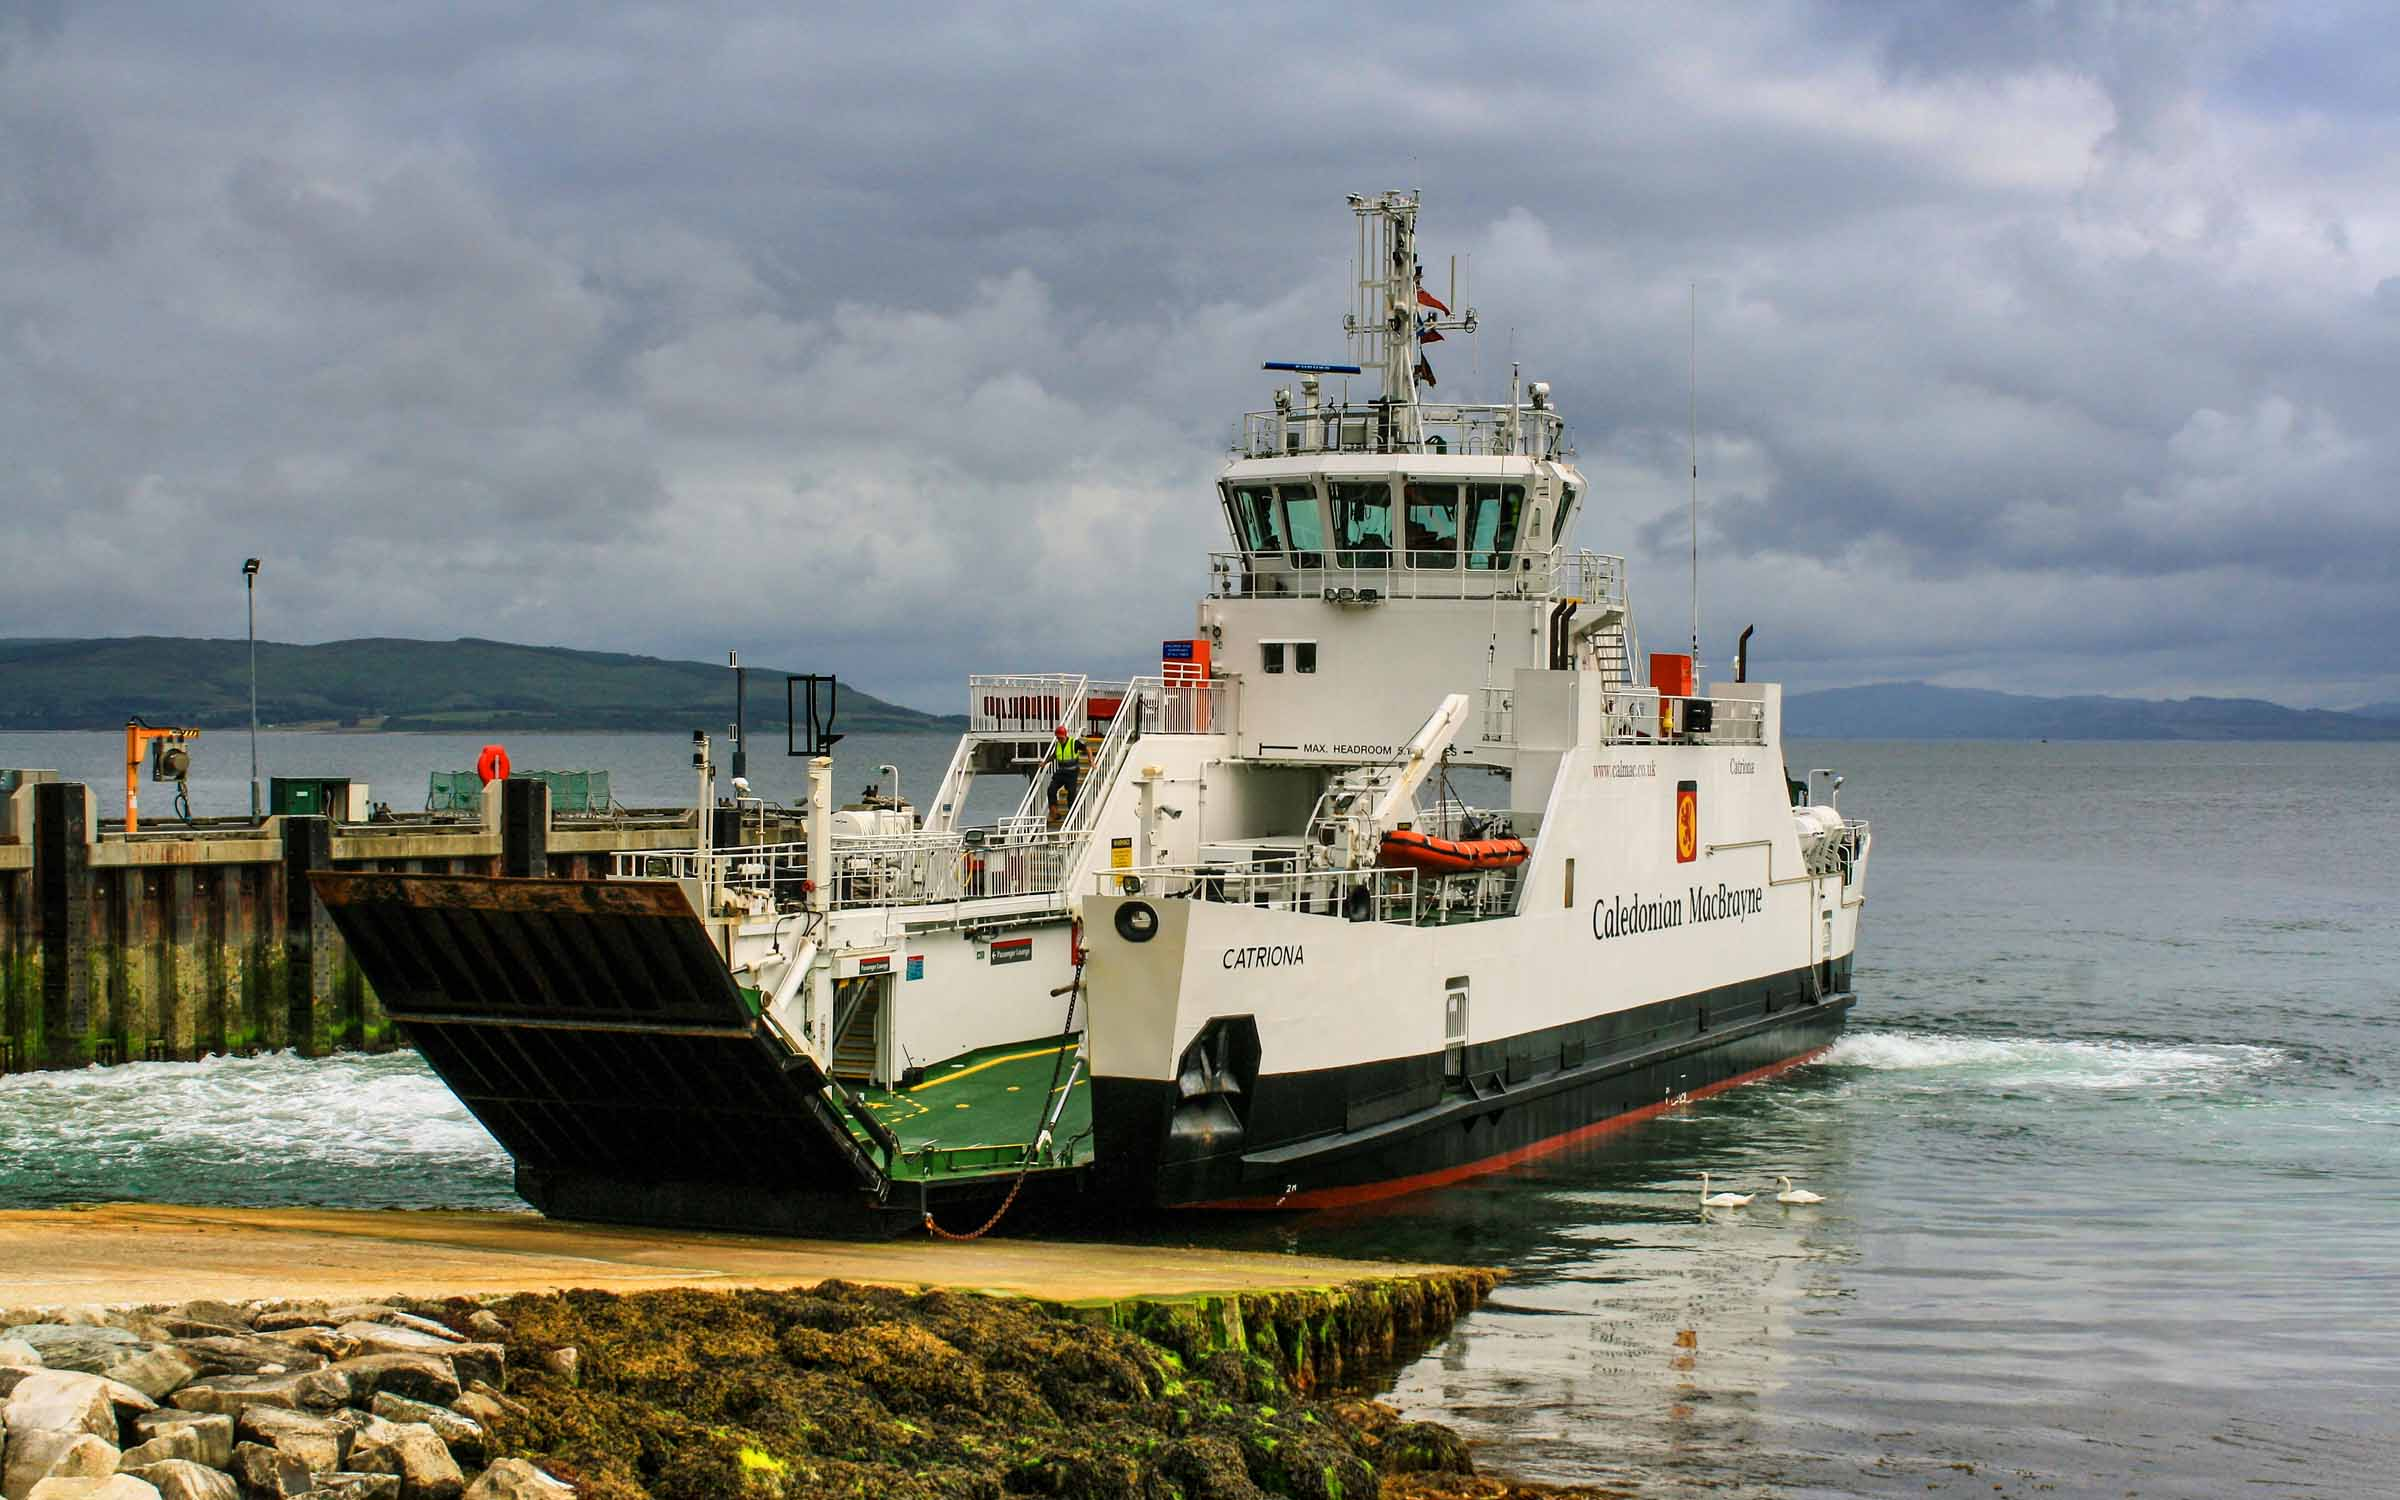 Catriona arriving at Lochranza (Ships of CalMac)